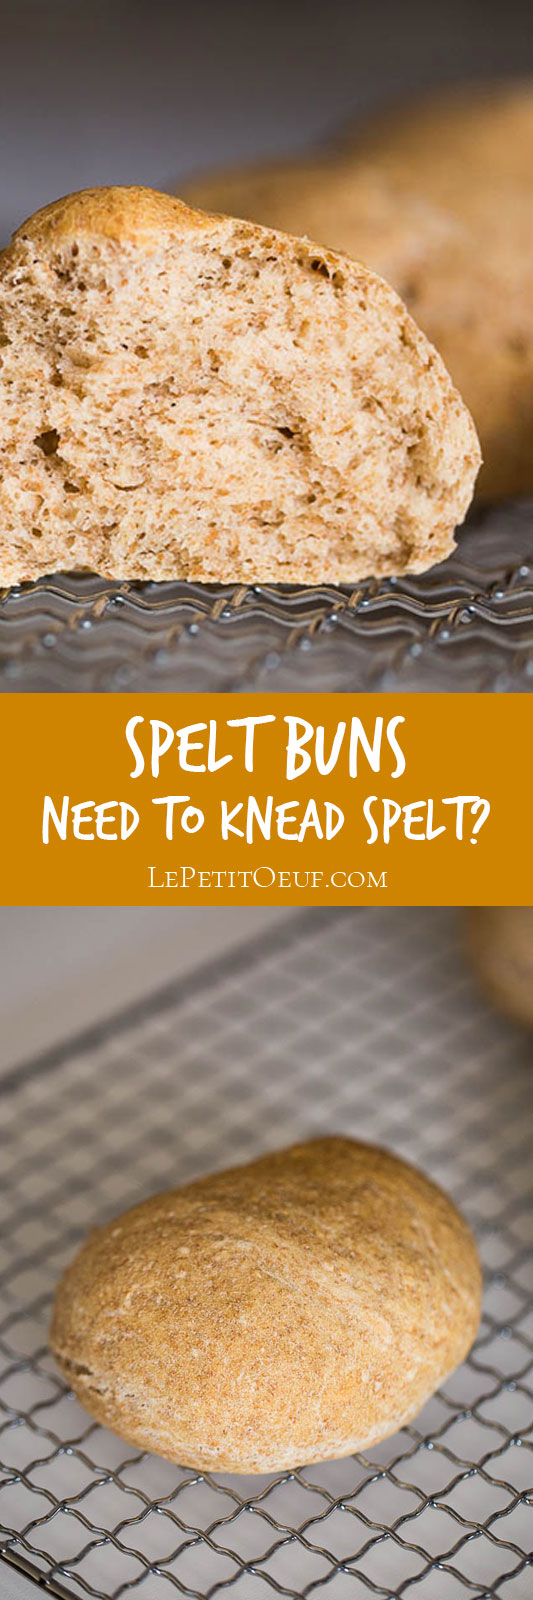 I've always wondered if I need to knead spelt dough, because it never seemed to make much difference. So I've done a side by side bake test to see if you really need to knead!